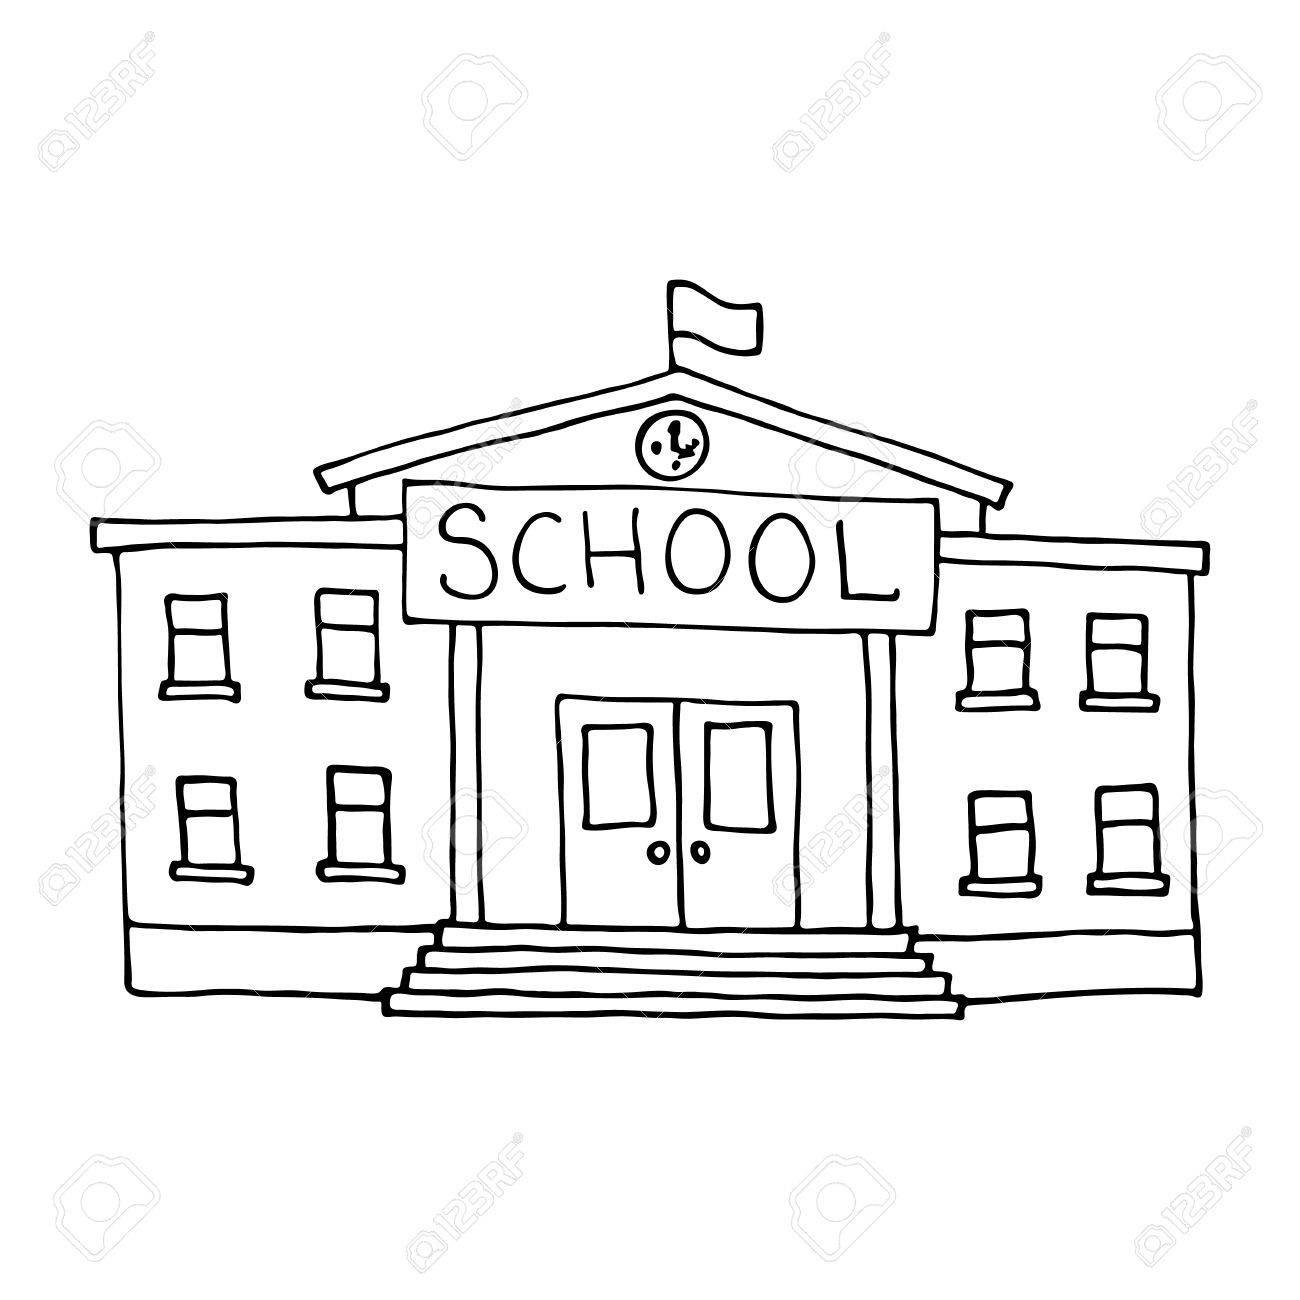 School building doodle. Outlined on white background..